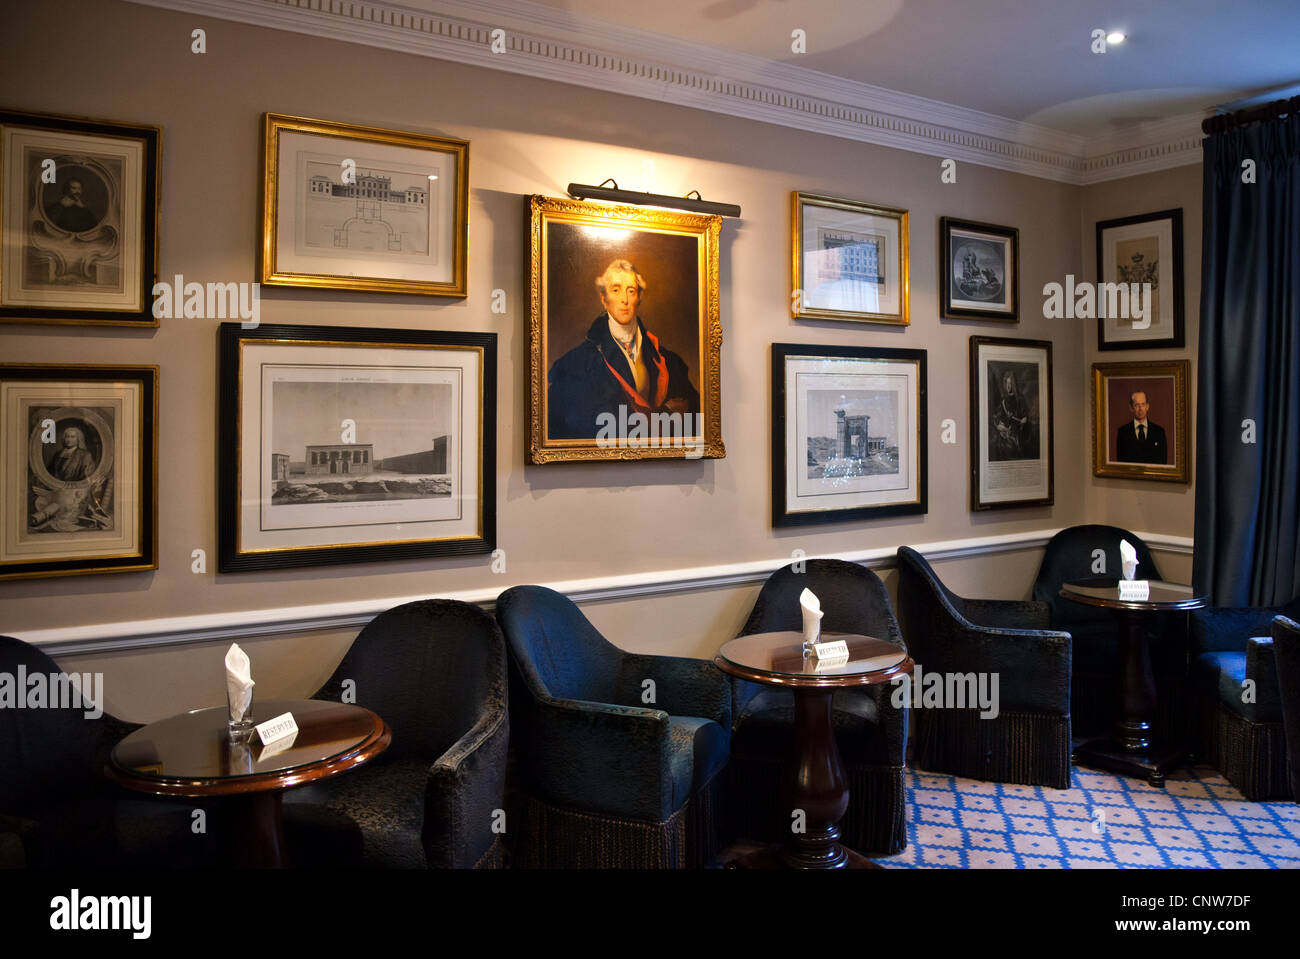 Europe England London, the James Bond's places, the Dukes Hotel in St James street - Stock Image